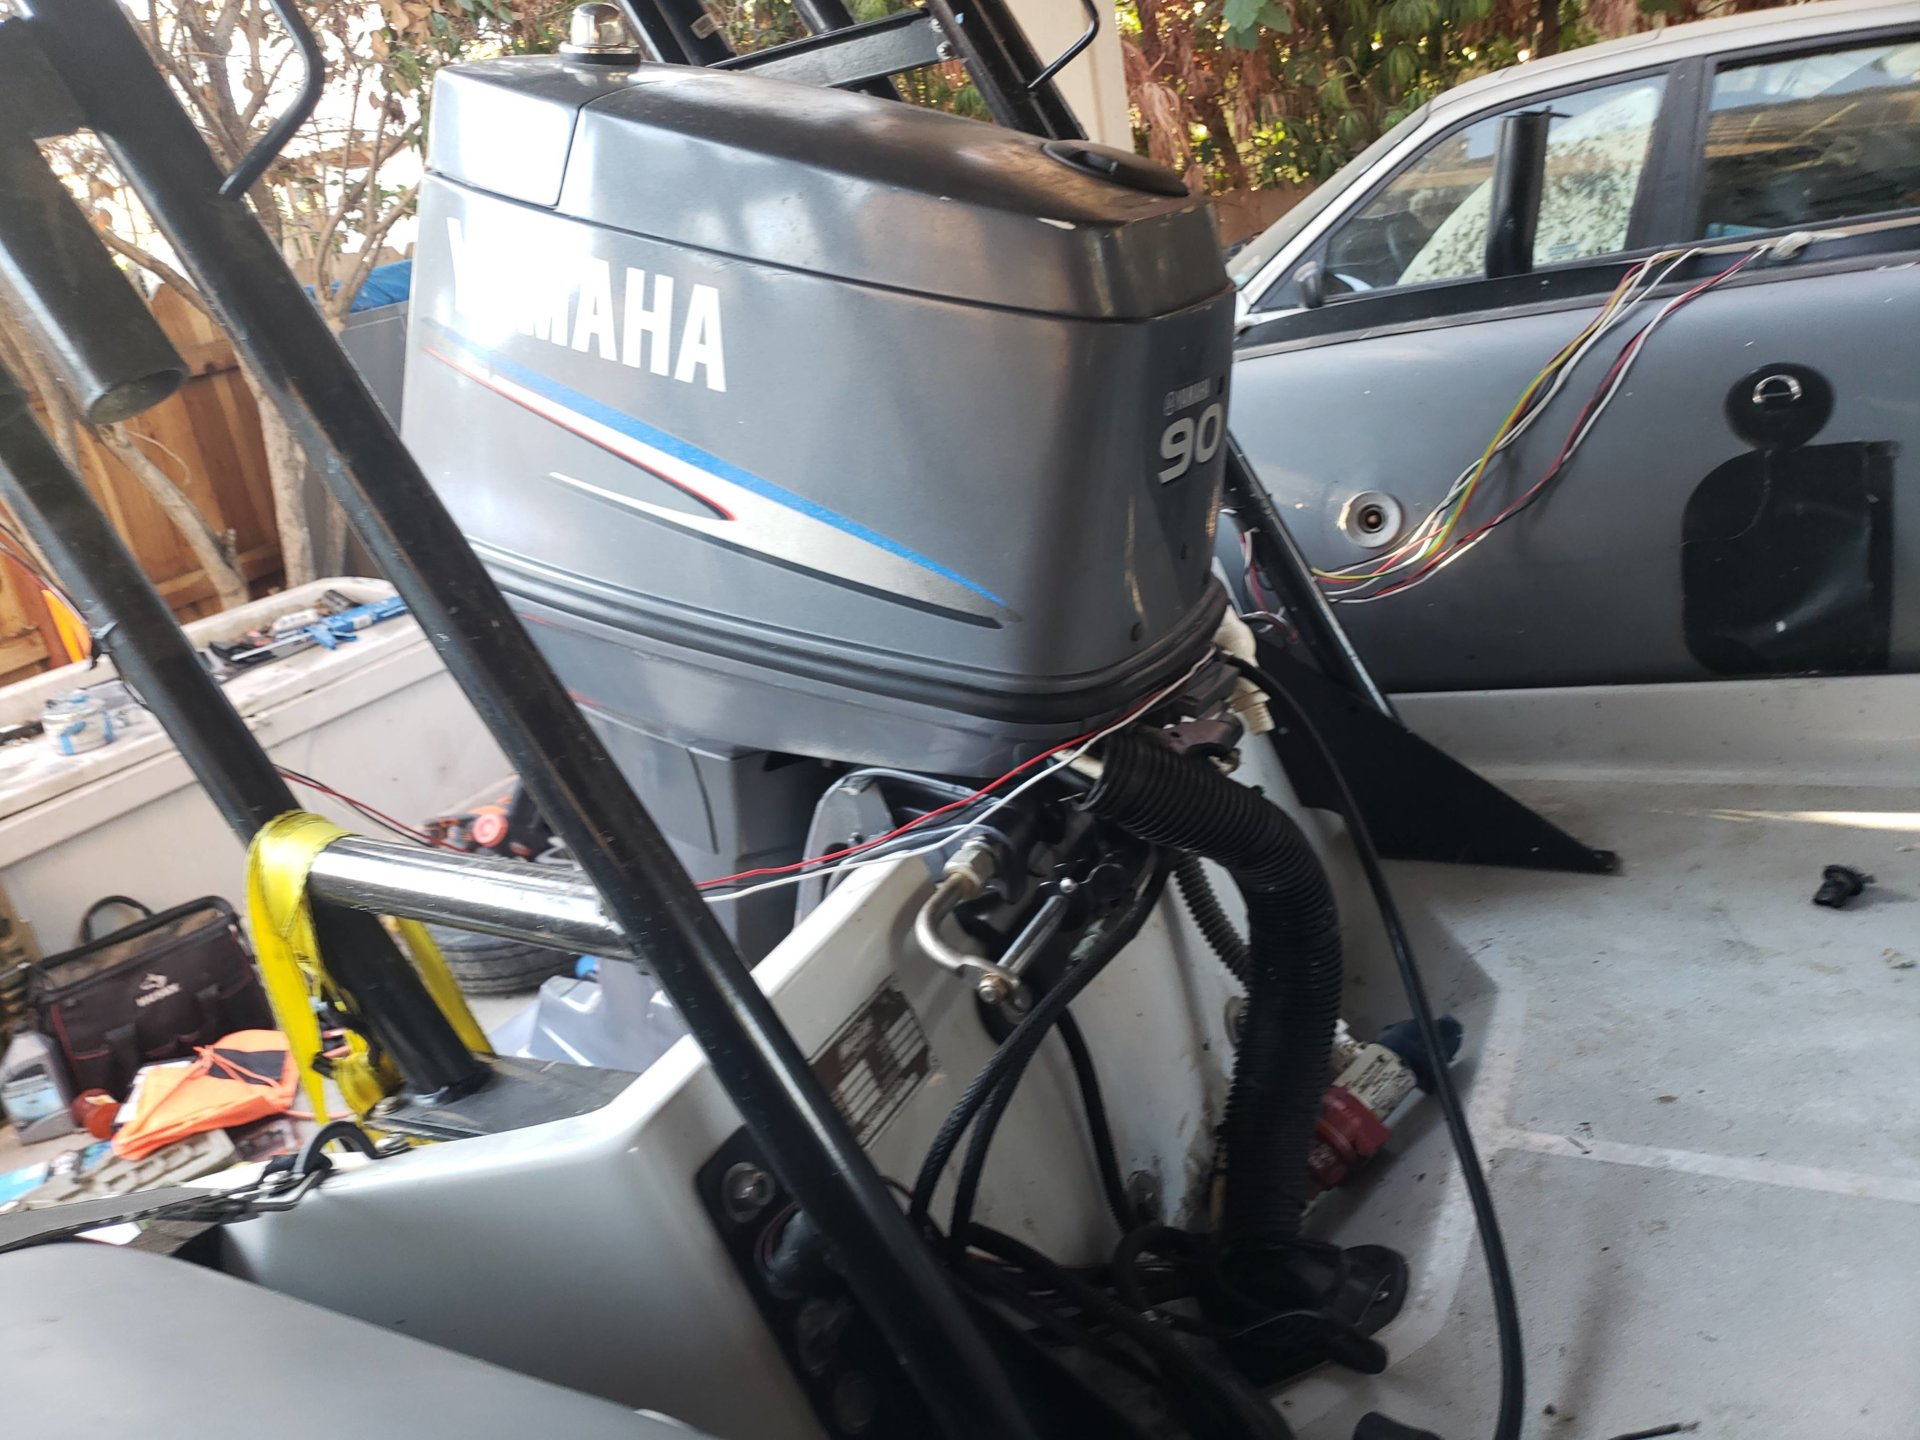 For Sale - Yamaha Outboard motor 90HP with all wiring ... Yamaha Outboard Wiring Harness For Sale on